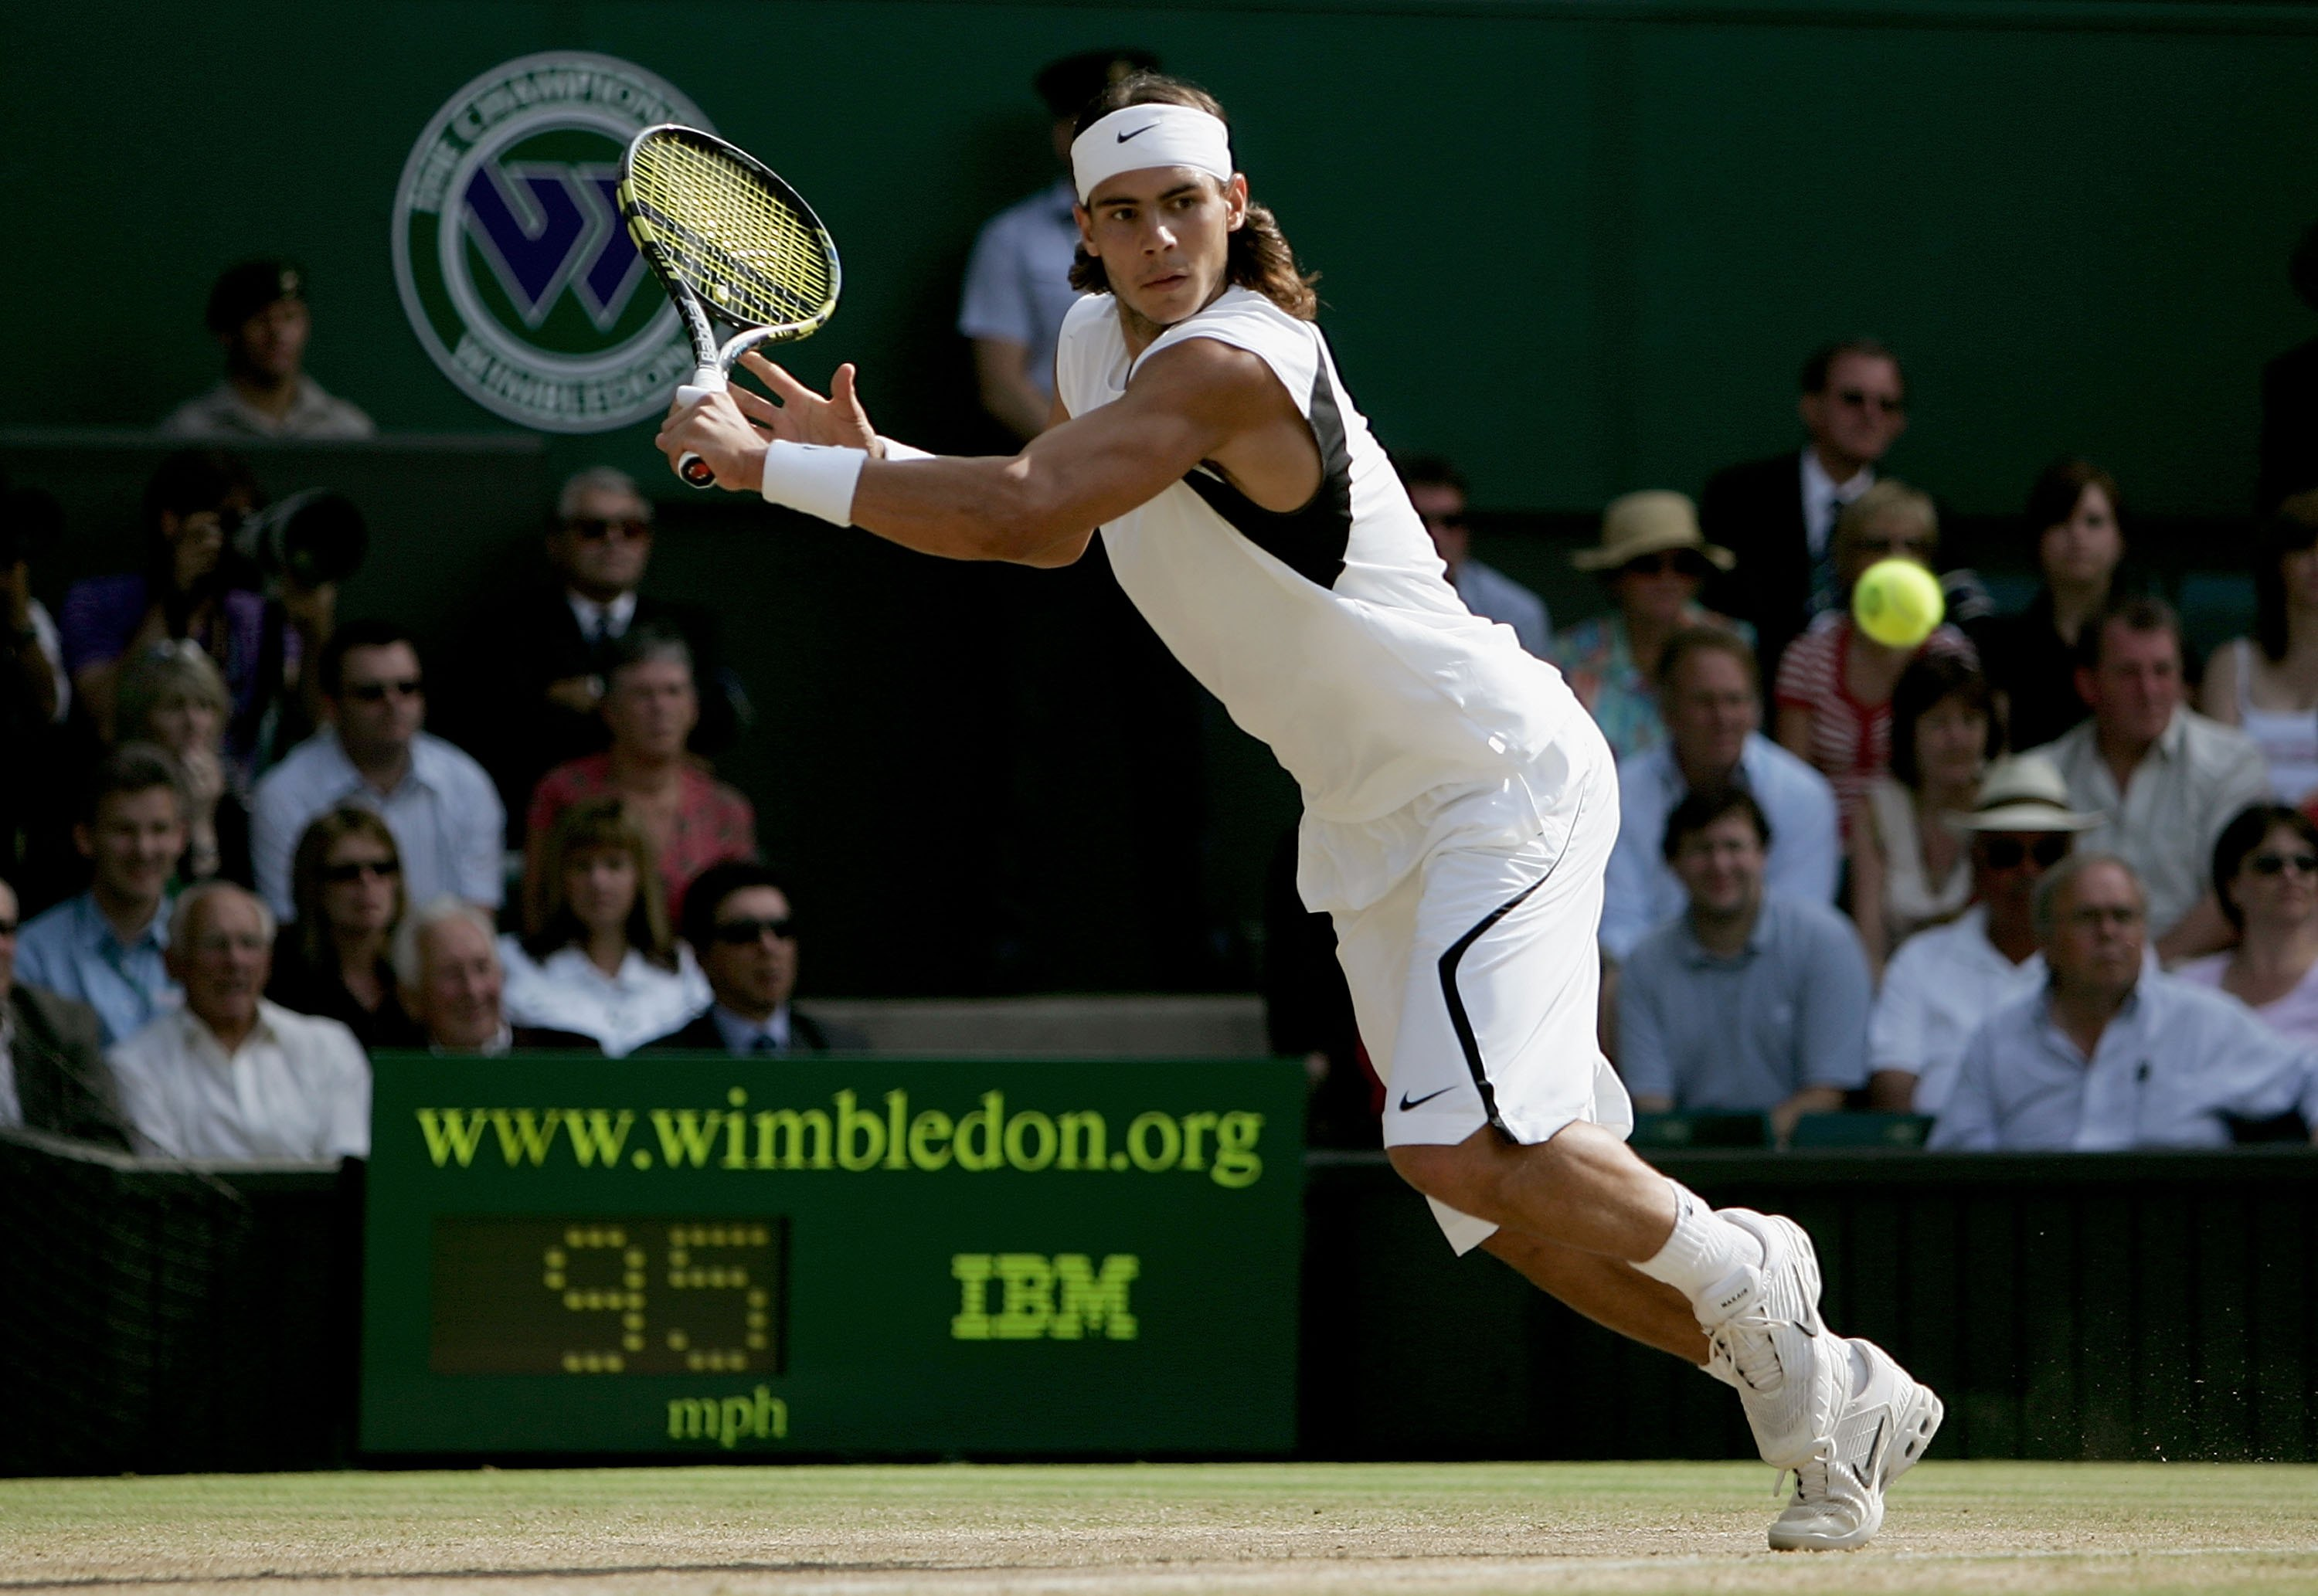 Rafa looks sleek and sharp in his Wimbledon whites, adorned with strokes of black.